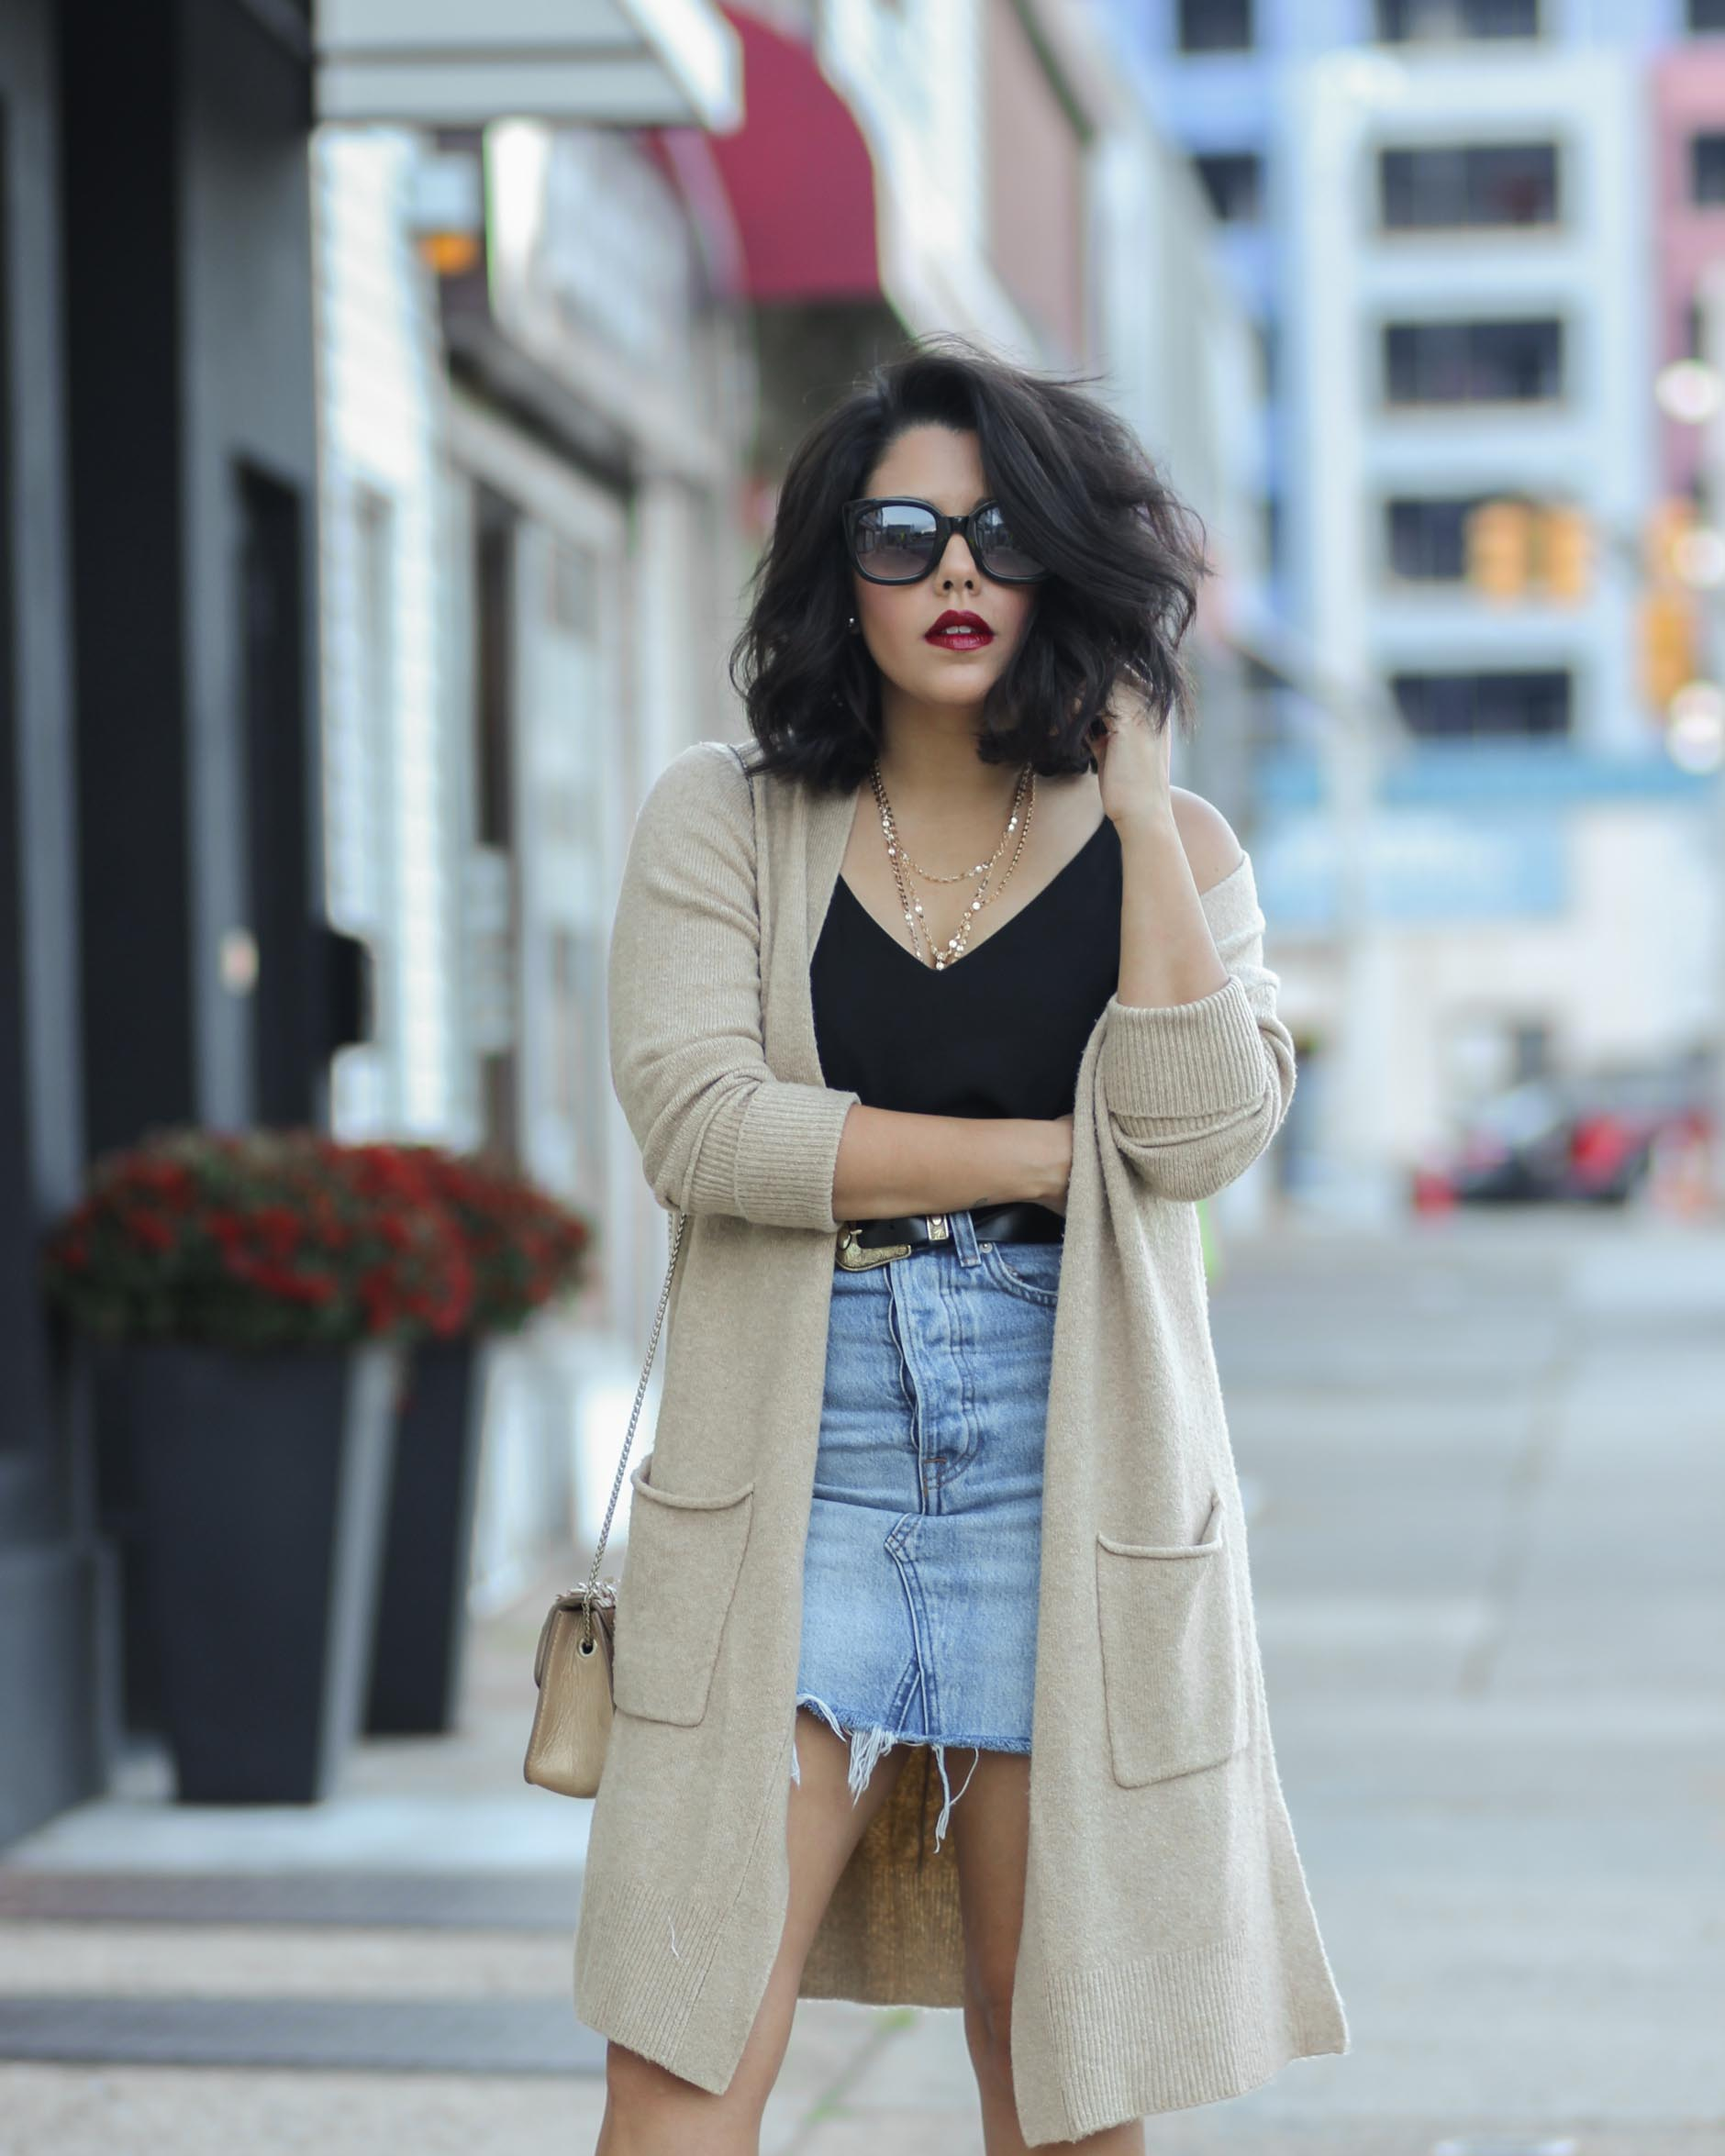 style blogger naty michele wearing a camel oversized cardigan